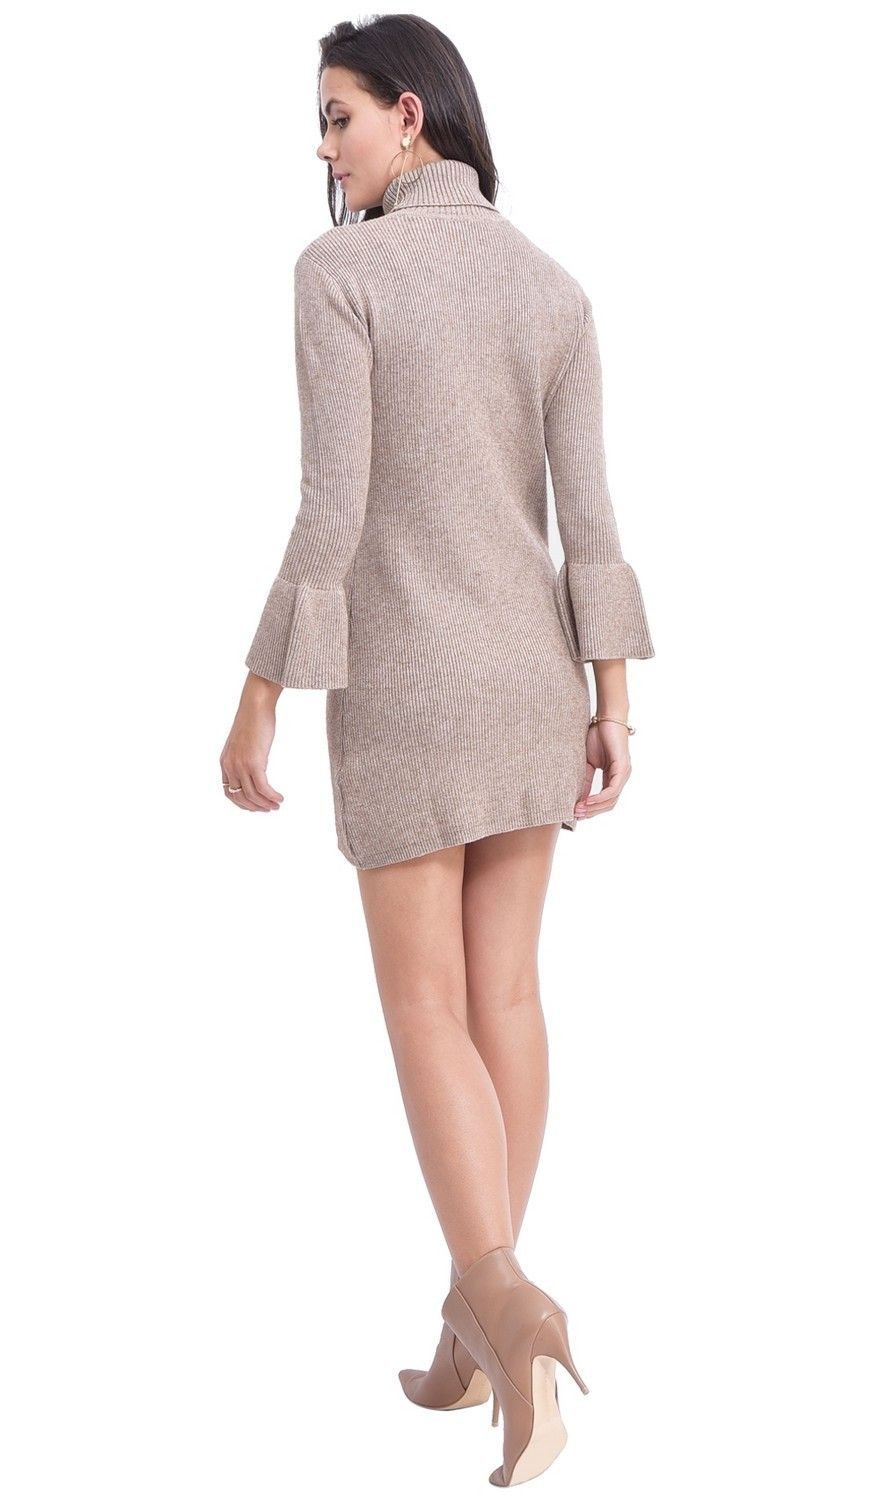 Assuili Roll Neck Dress with Babydoll Sleeves in Beige